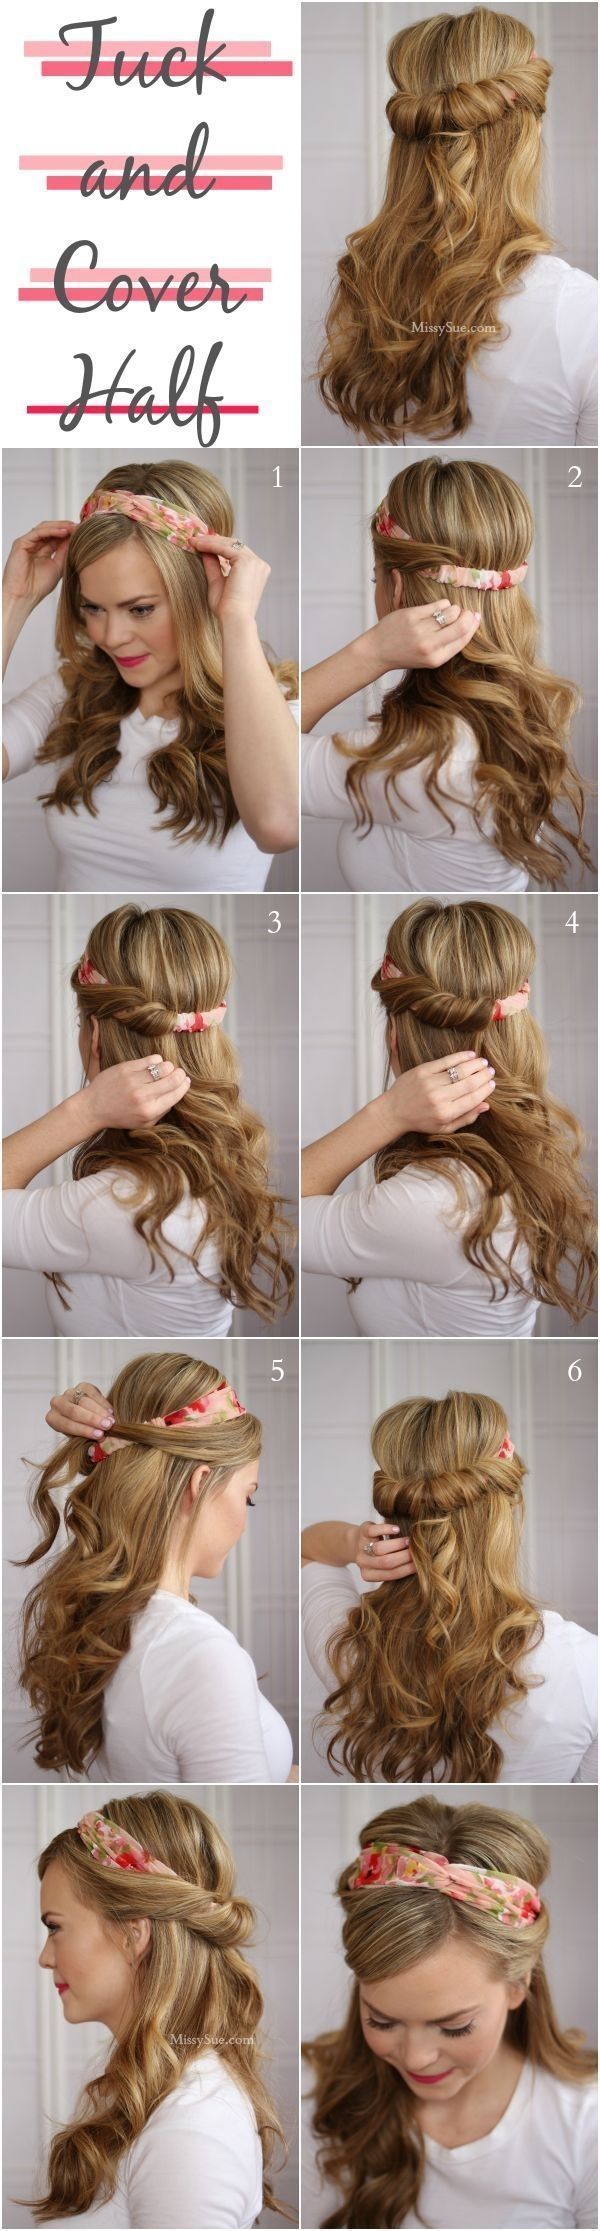 Hairstyles for Work Easy hairstyles Medium hair and Tutorials